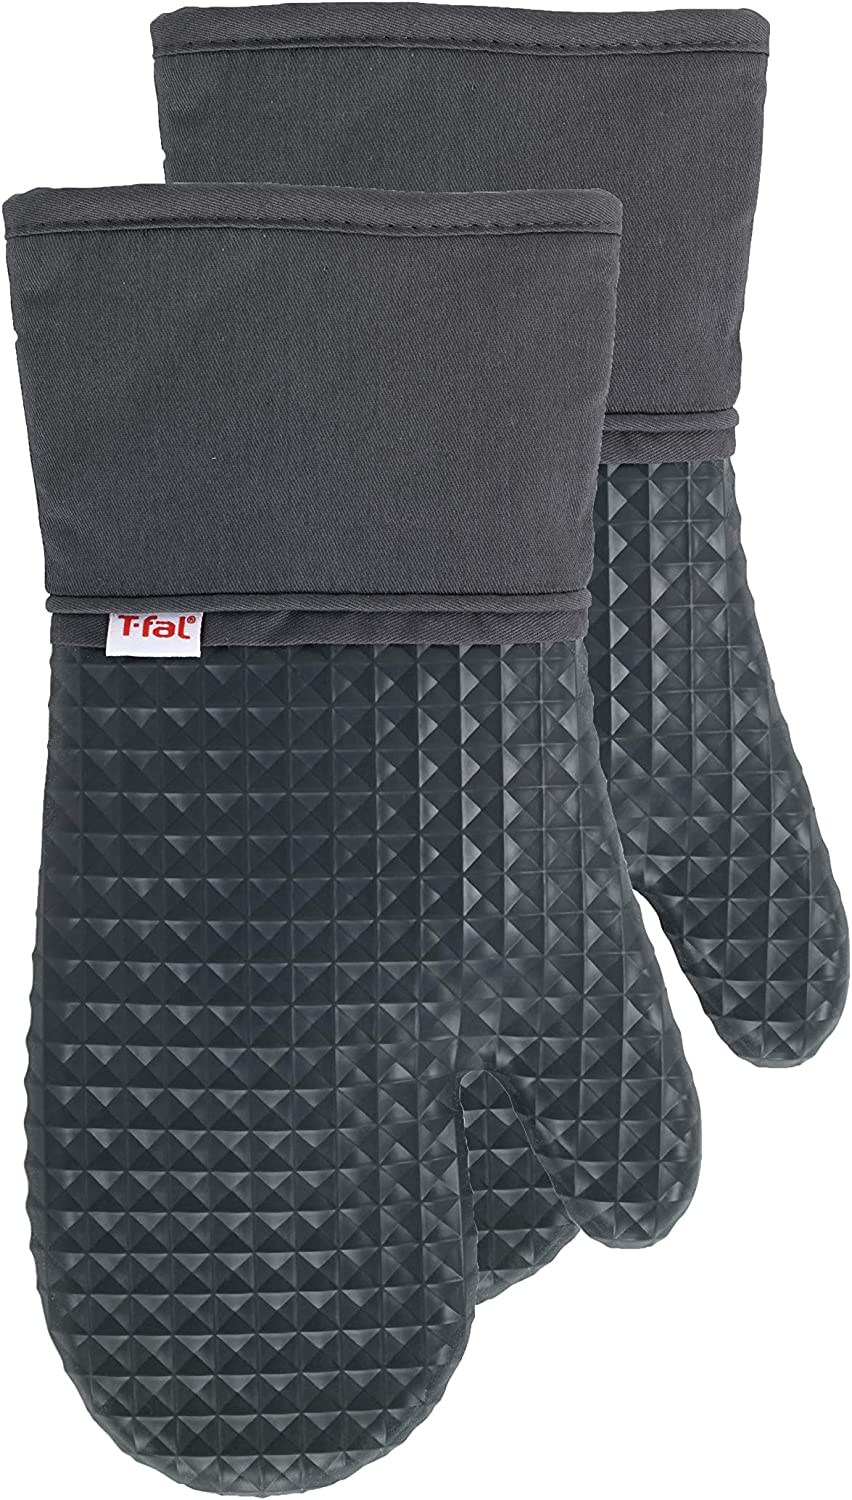 T-Fal Textiles 54318 Waffle Softflex Silicone Oven Thumb Mitt, 2 Pack, Charcoal